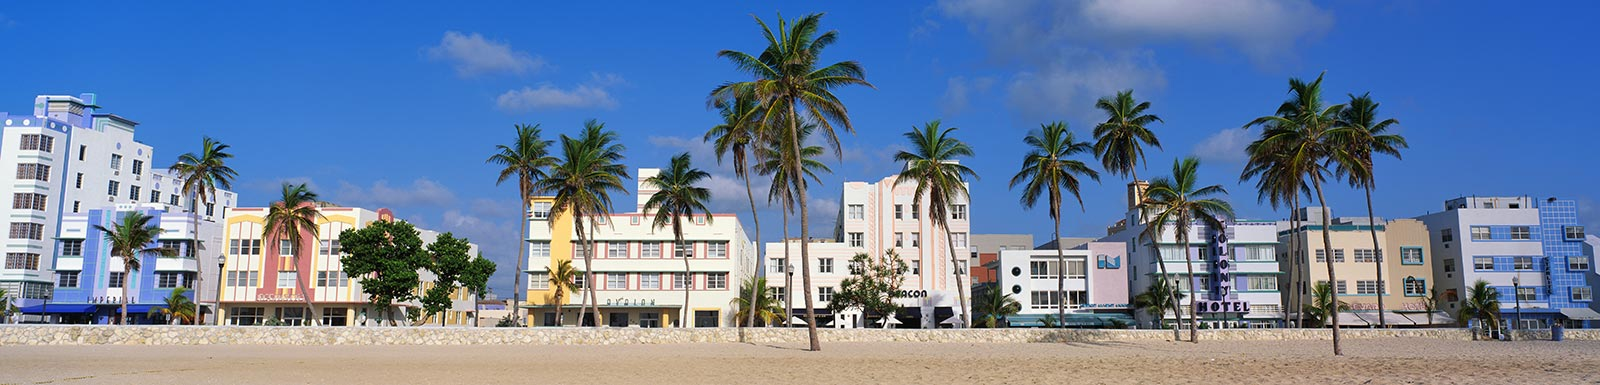 Asbestos Removal in Miami Beach, Florida